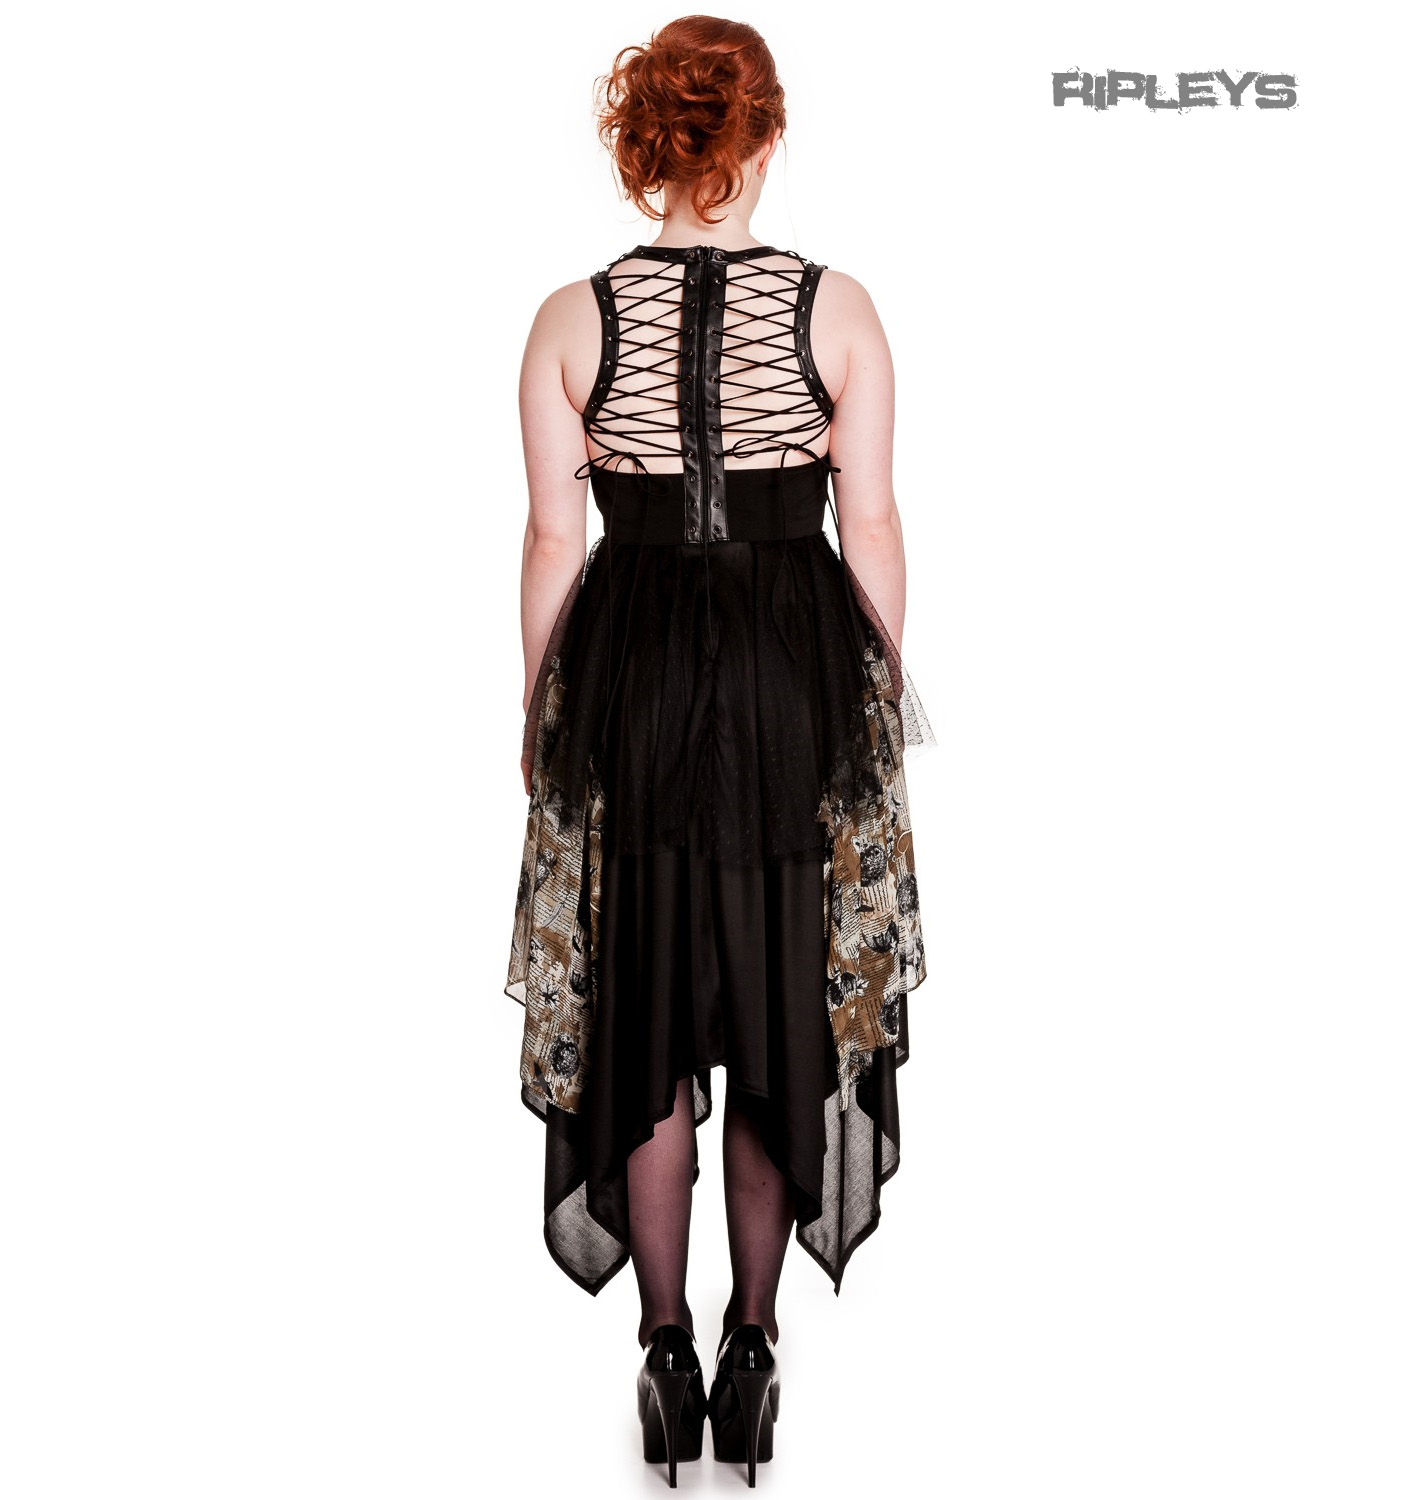 Hell-Bunny-Spin-Doctor-Goth-Black-Dress-ECLIPSE-Grunge-Steampunk-All-Sizes thumbnail 12